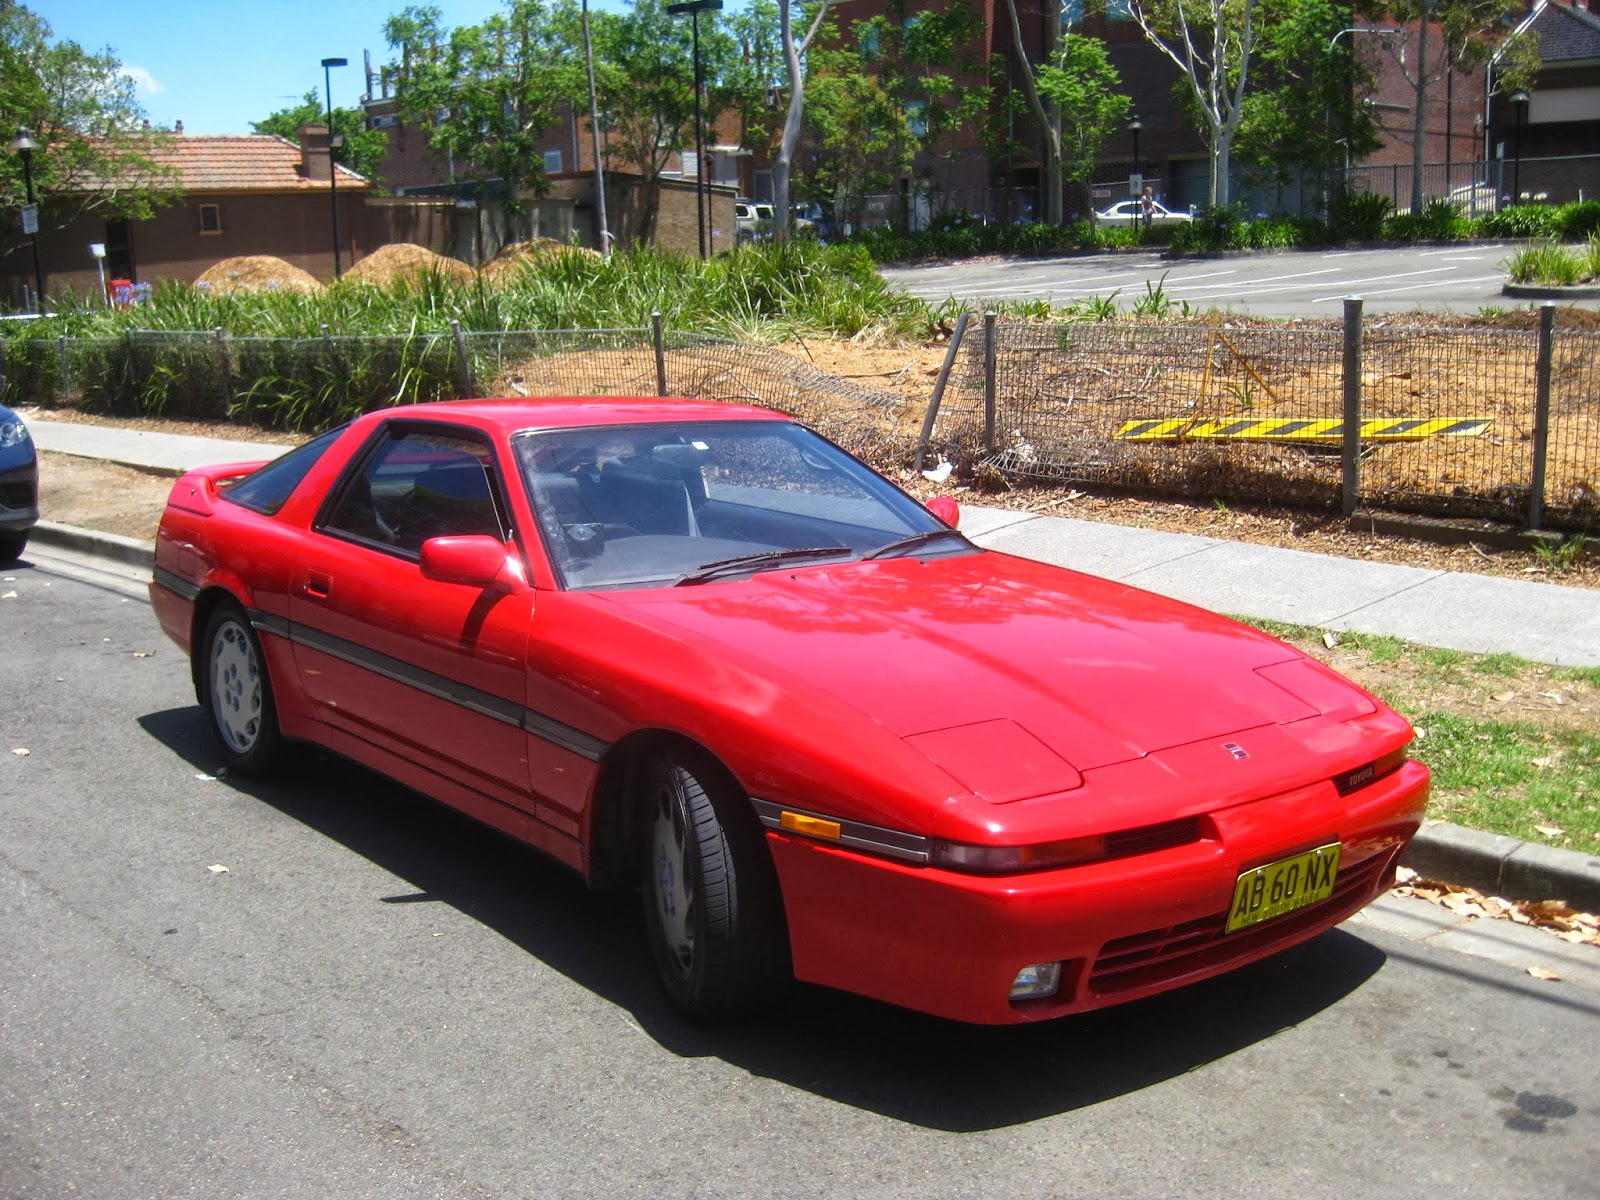 aussie old parked cars 1989 toyota supra turbo. Black Bedroom Furniture Sets. Home Design Ideas